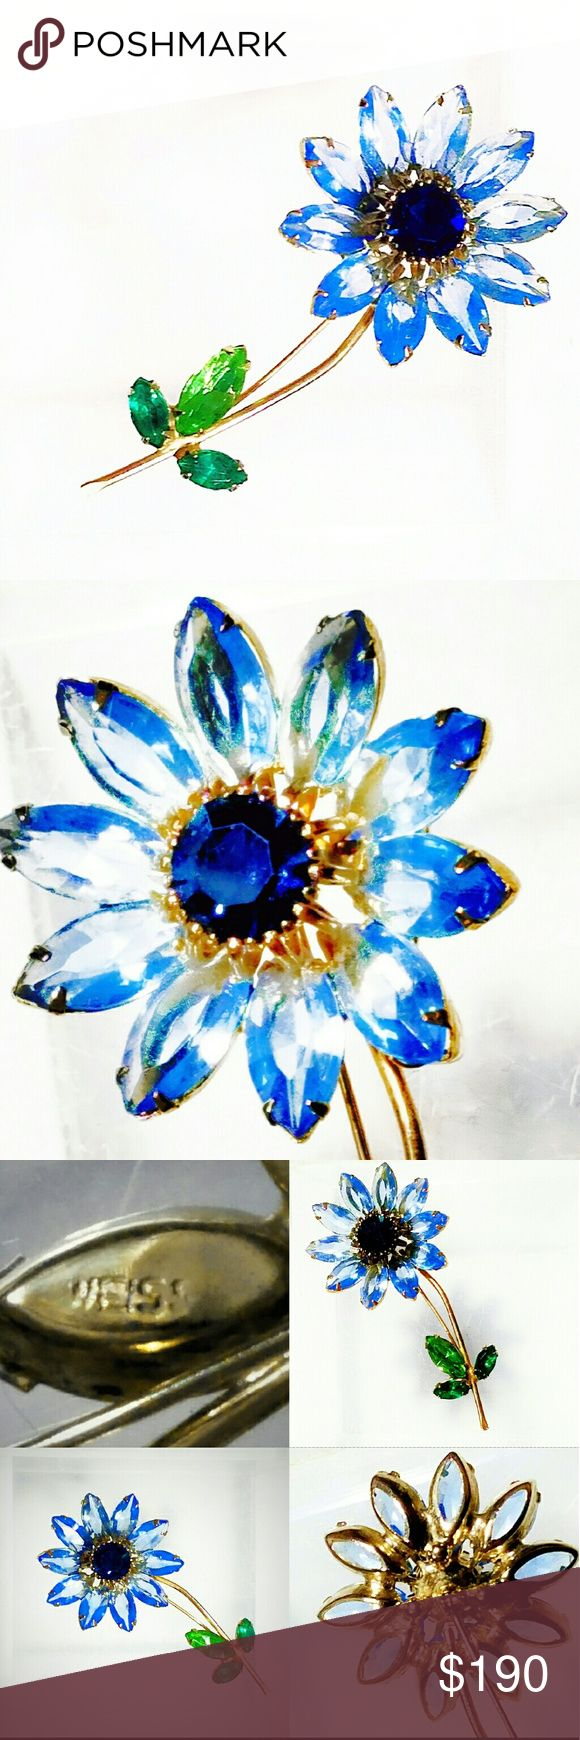 """Weiss Flower Pin Made by DeLizza and Elster- RARE! Vintage Weiss Flower Pin made by DeLizza and Elster (D&E) of Juliana fame. This is a cateloged Book Piece, shown in Judith Miller's book, """"Costume Jewelry"""" (2003) on page 132. There are very few Weiss pieces confirmed to have been made by D&E, making this brooch very rare & highly collectible. The dazzling prong-set navettes of blue Austrian crystal rhinestone petals & leaves w/a faceted sapphire blue crystal center are set in gold-plated…"""